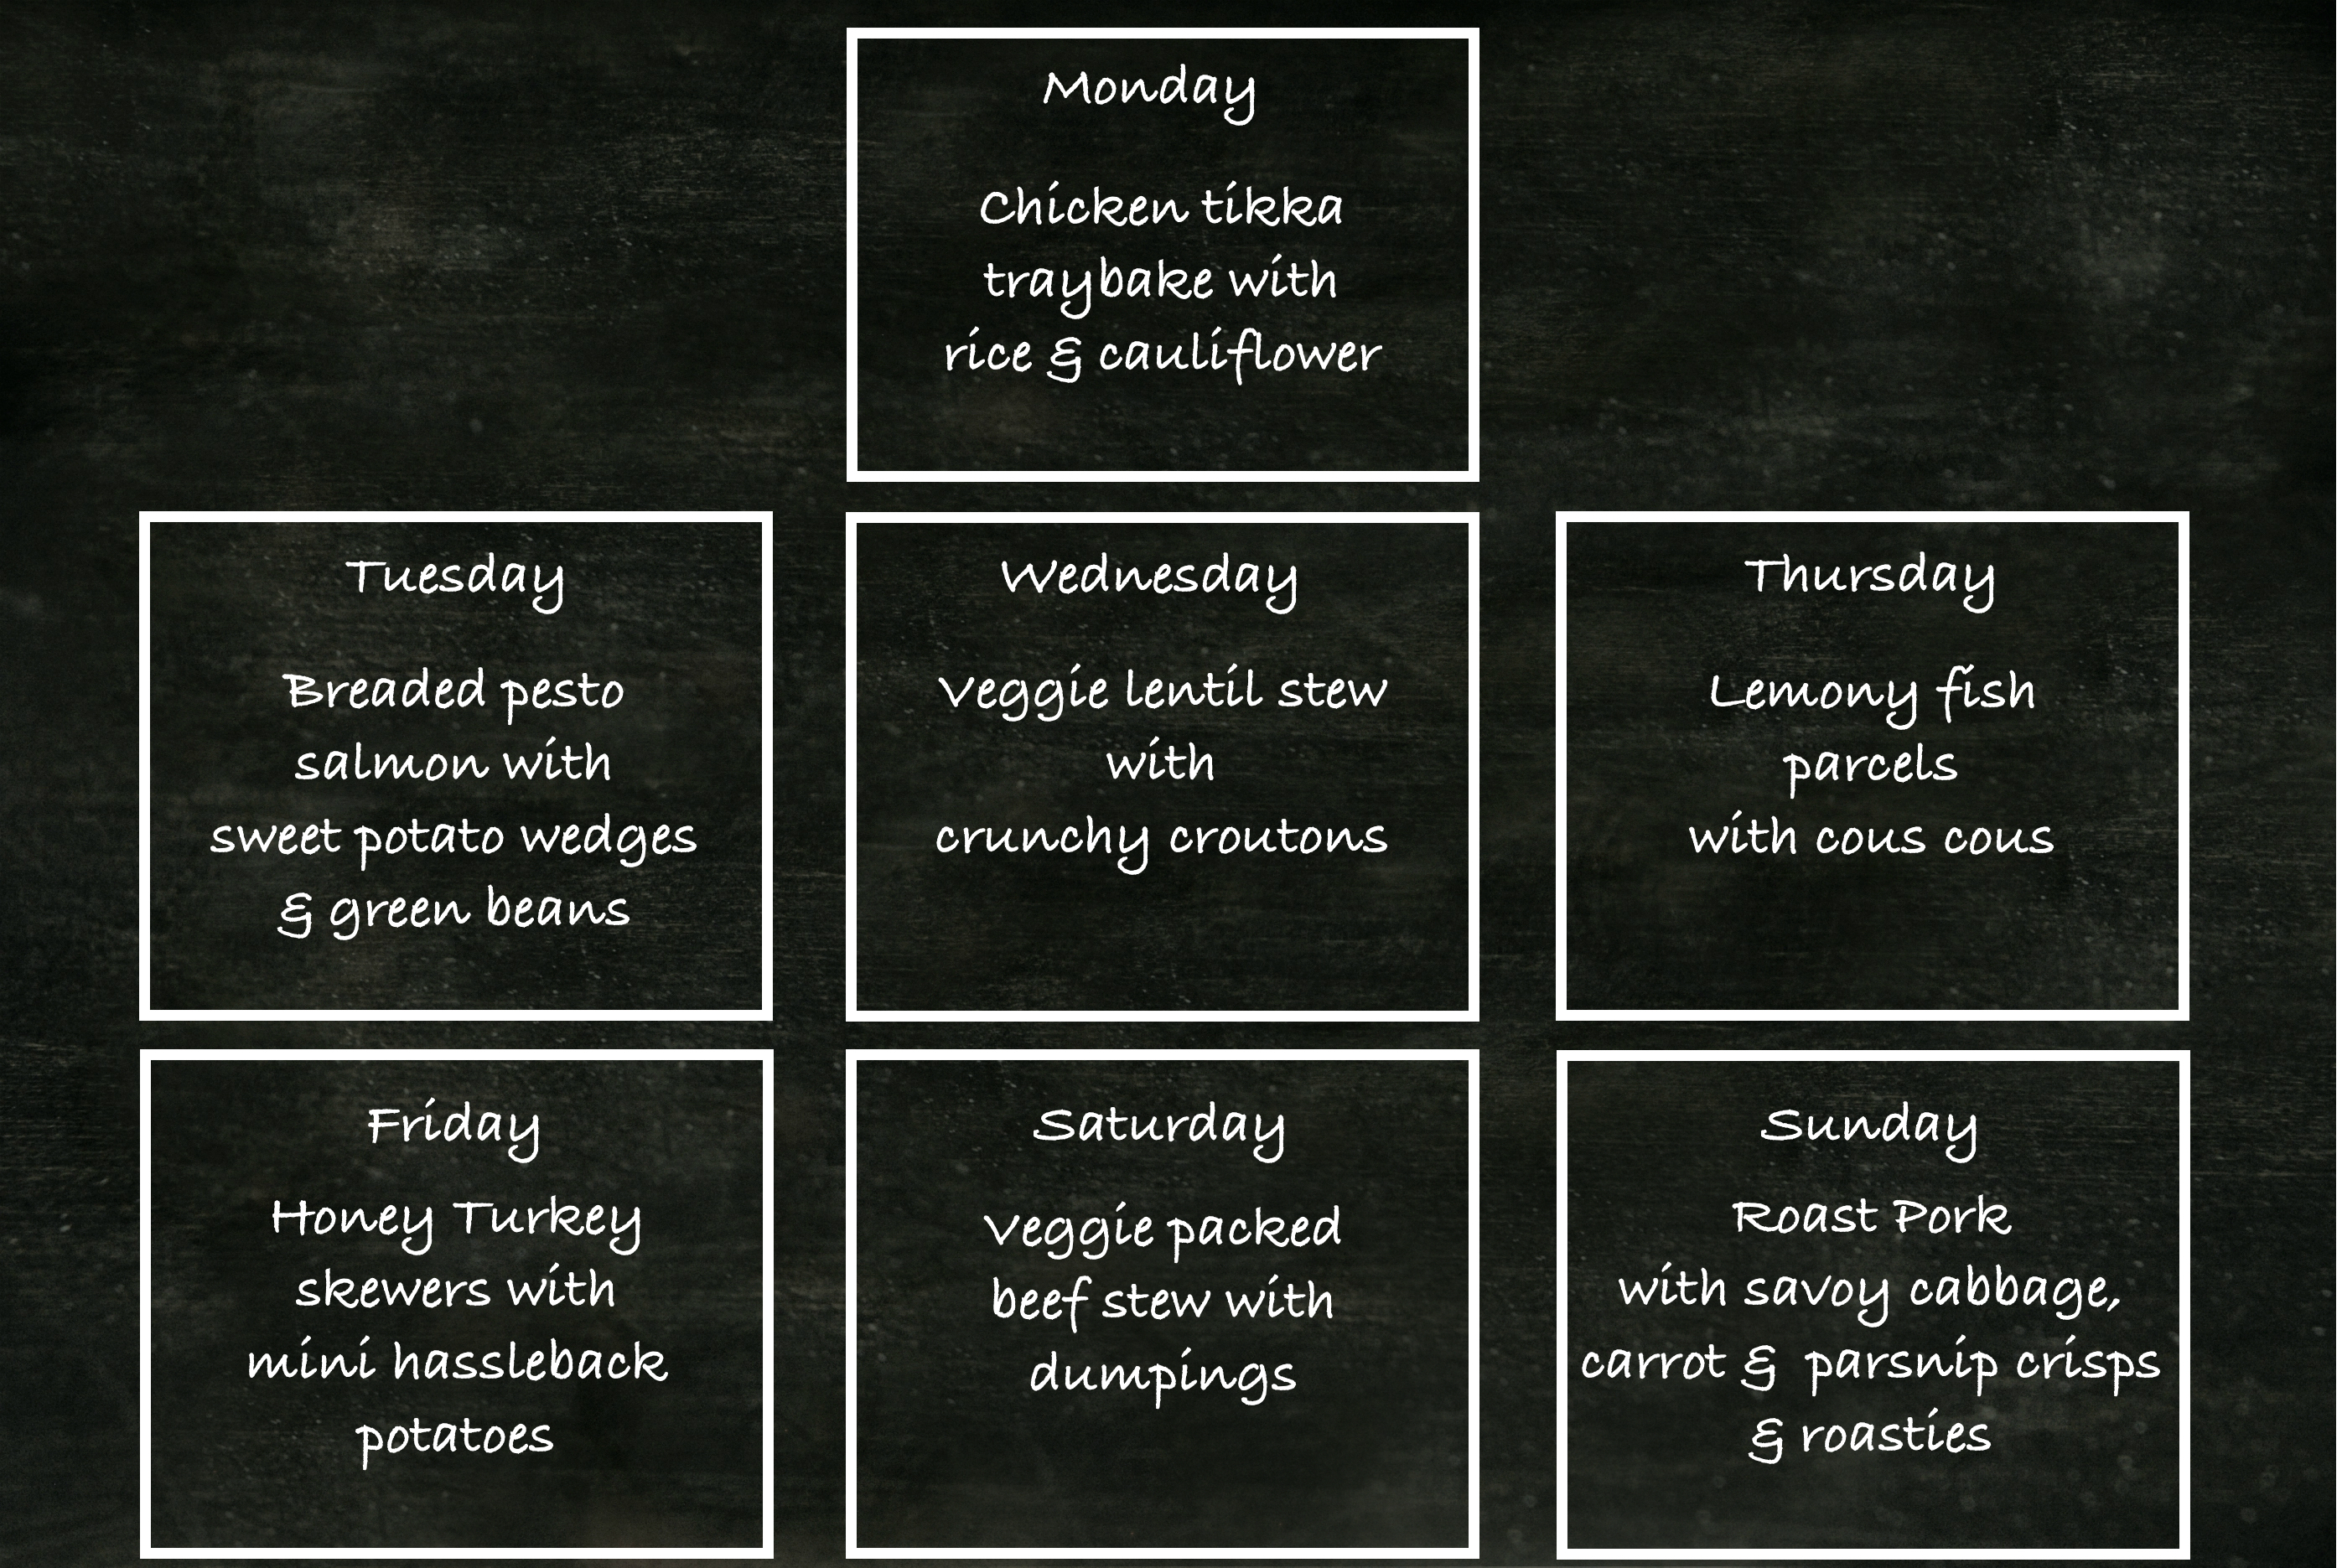 meal planner, family meal ideas, menu planning, family mealtimes, catherine lippe nutrition, registered nutritionist RNutr, Kids Nutritionist